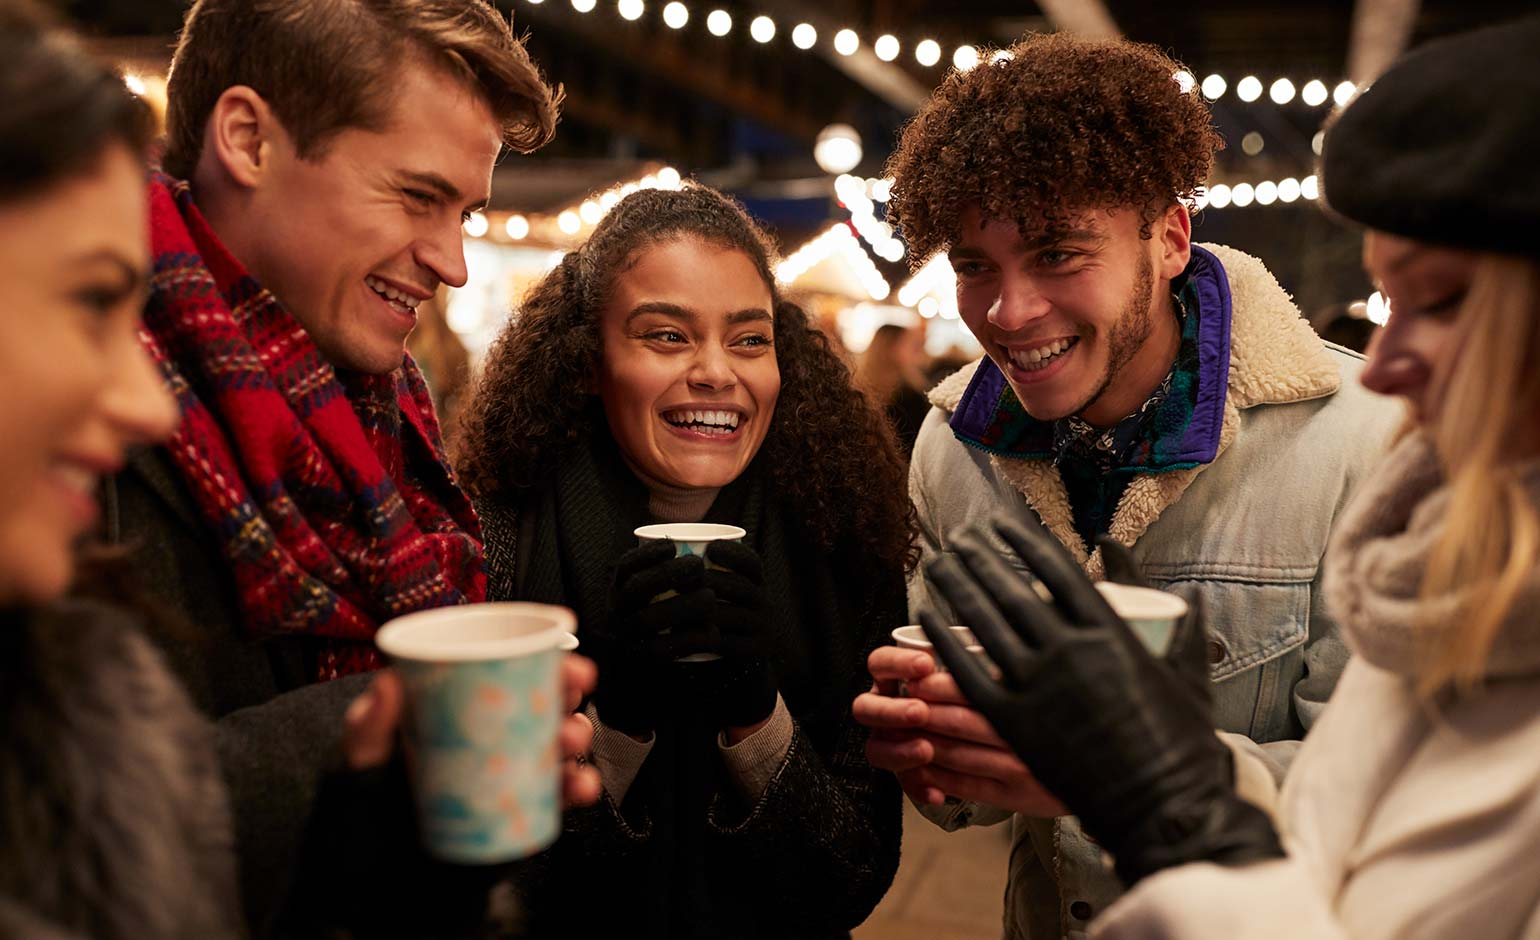 SouthGate launches Christmas celebrations by giving away free festive drinks | Bath Echo